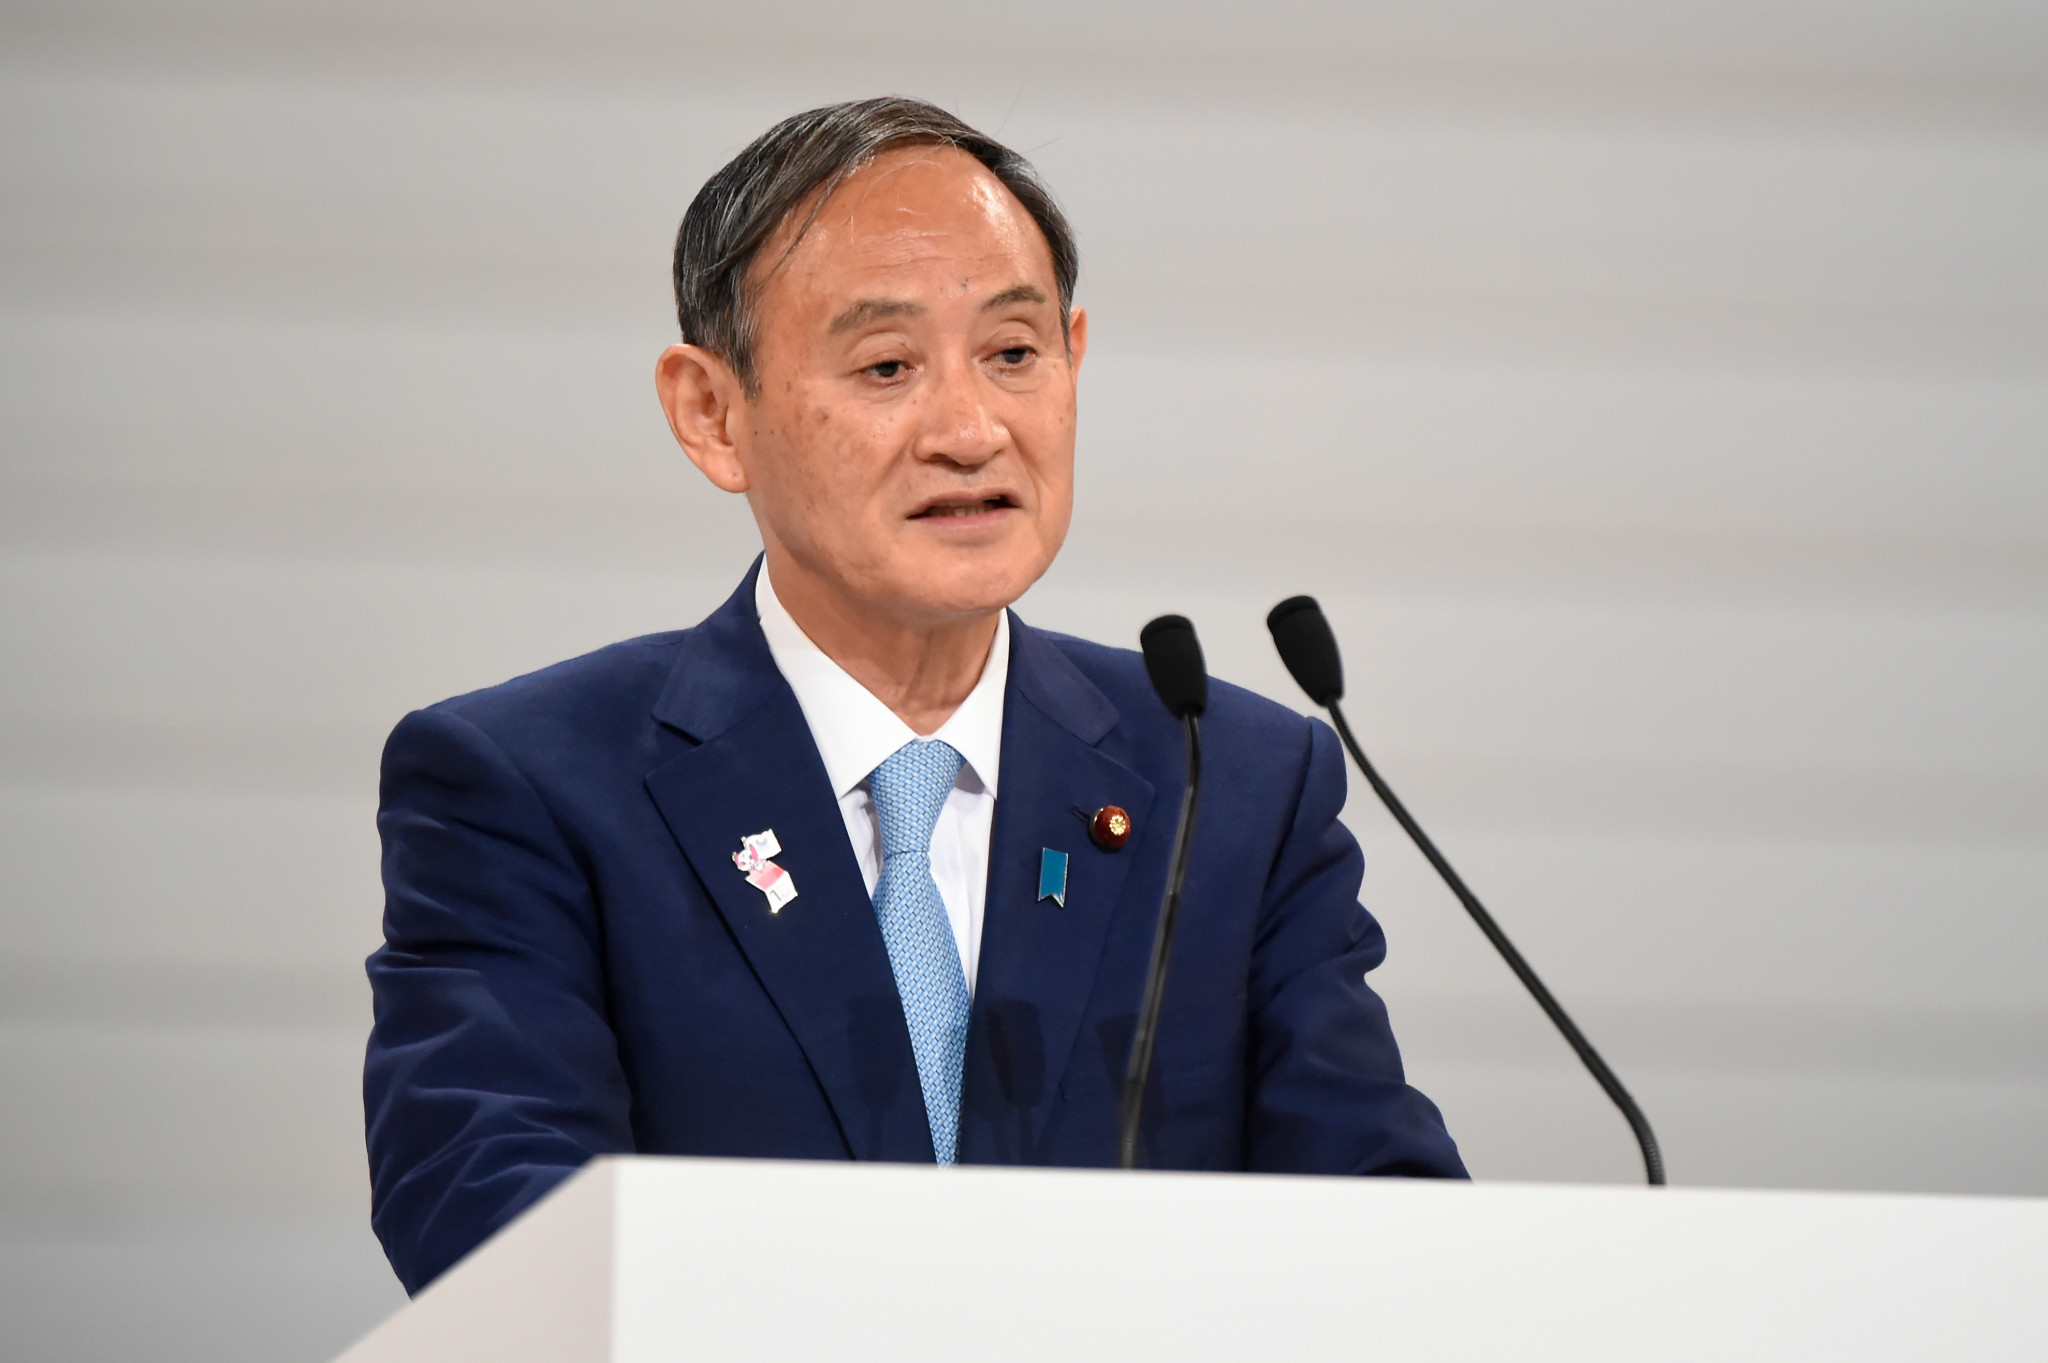 Yoshihide Suga is now set to be Japanese Prime Minister during next year's Olympic and Paralympics in Tokyo ©Getty Images